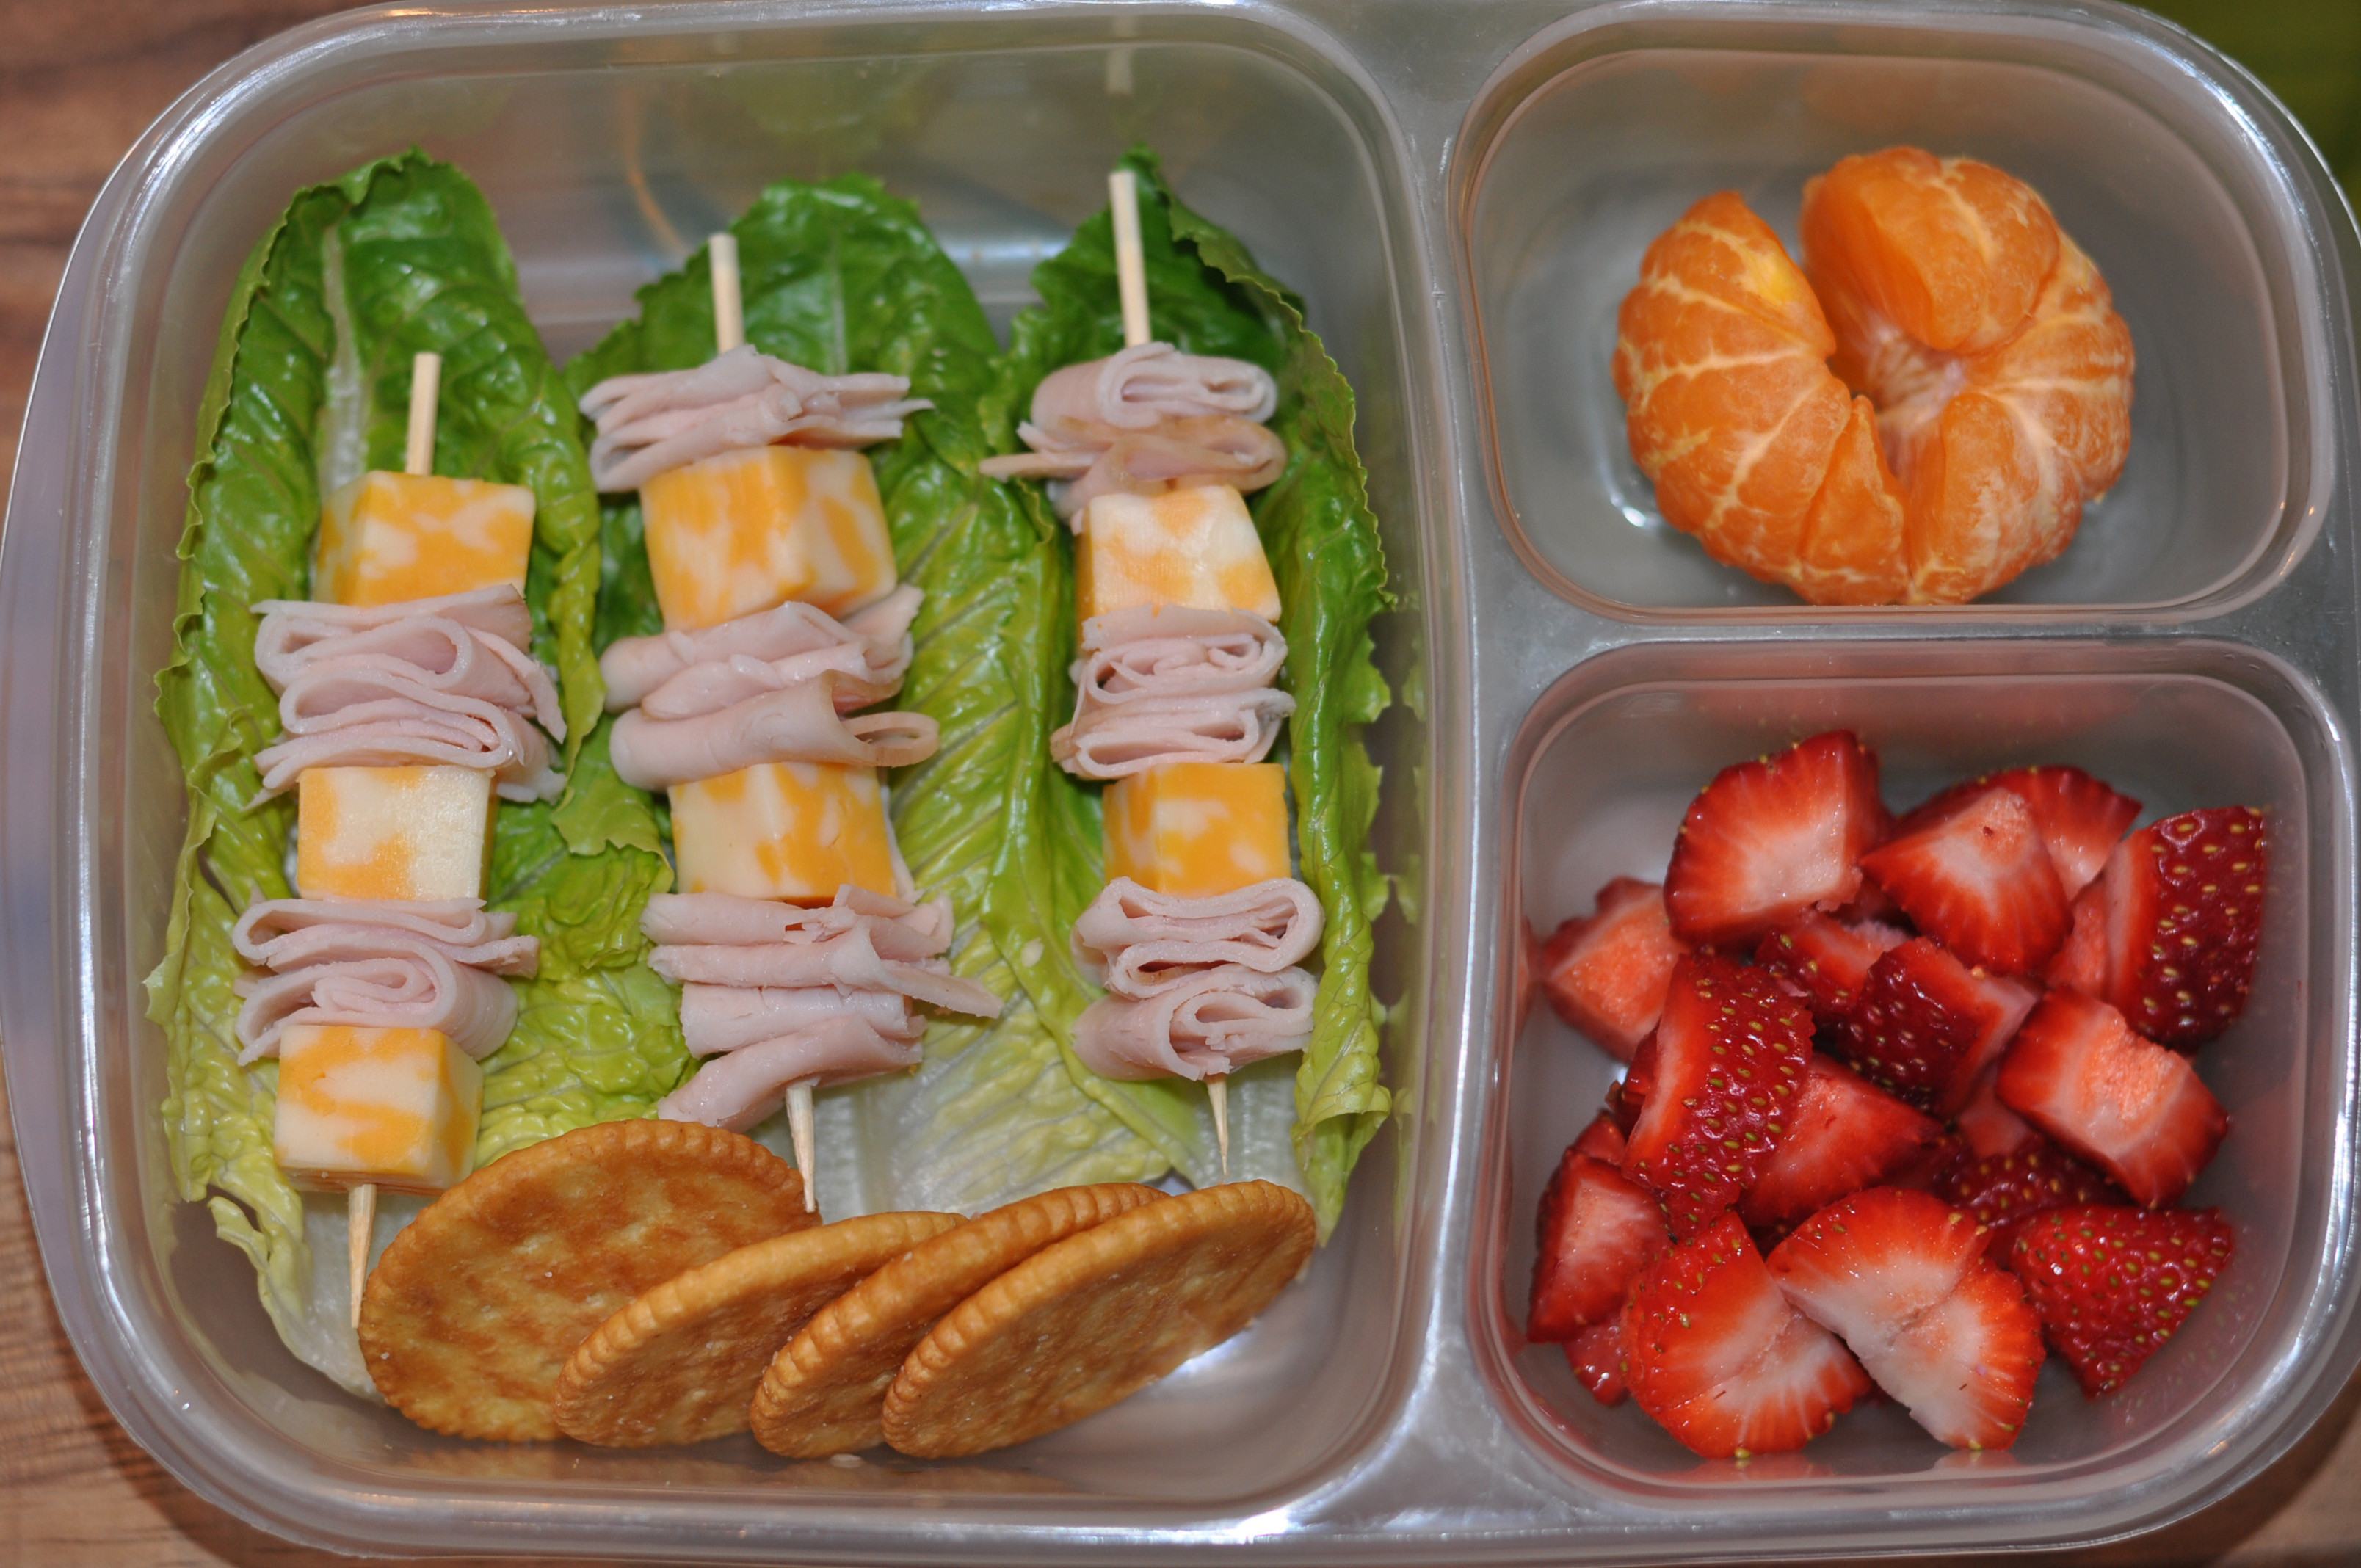 Easy Healthy Lunches To Go  Easy School Lunches With Hillshire Farm Natural Lunchmeat